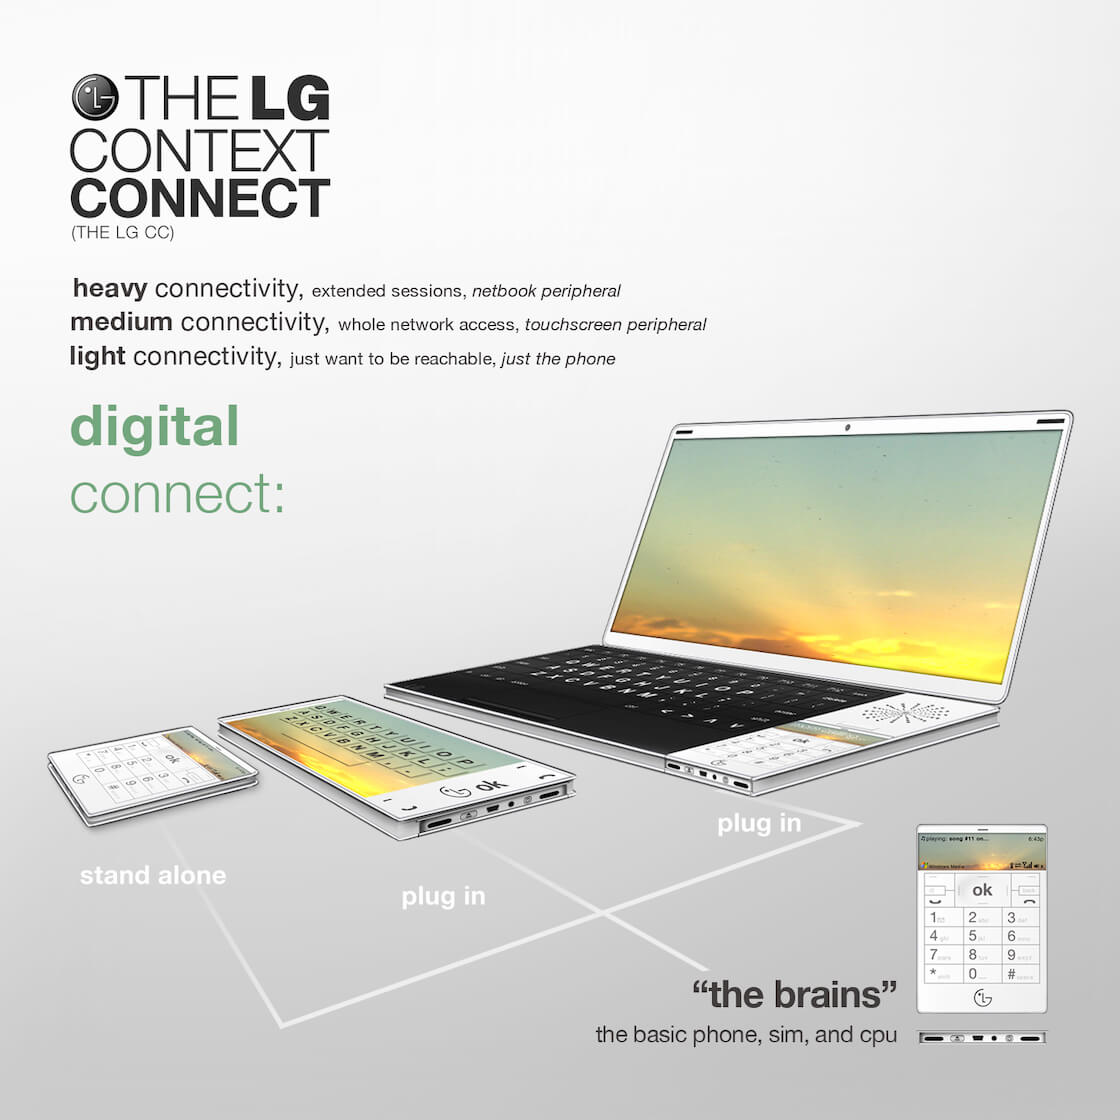 crowdspring case study - lg product design